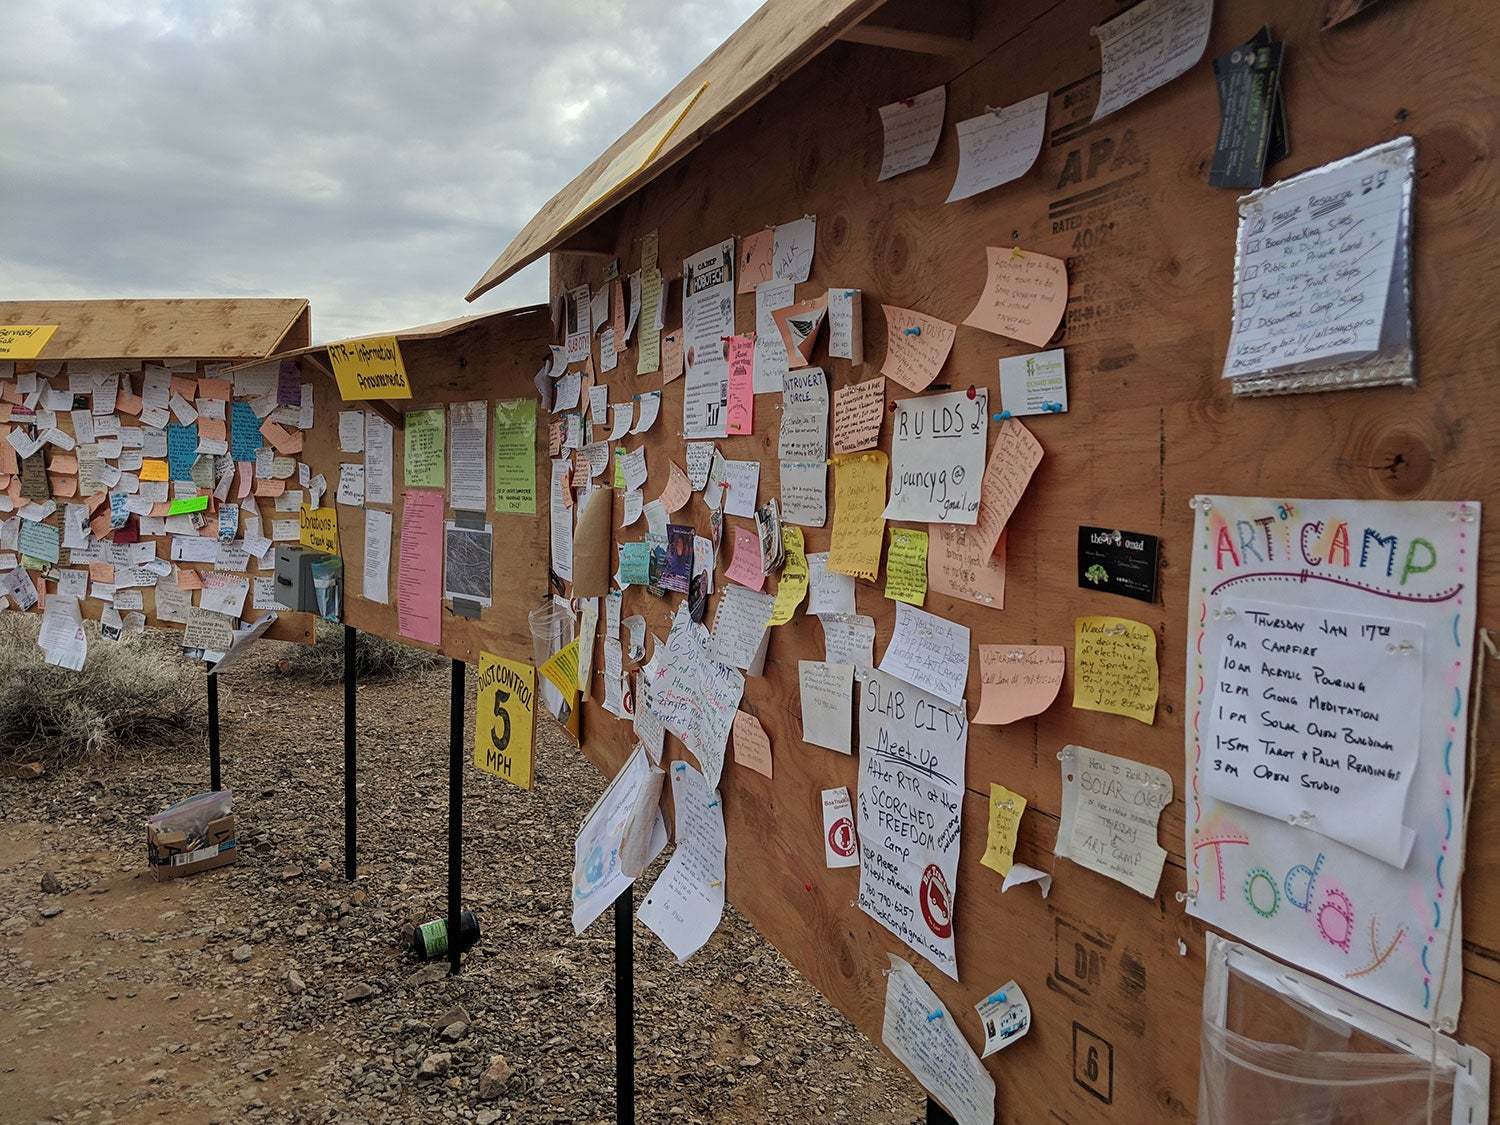 Community board with fliers in Quartzsite, AZ